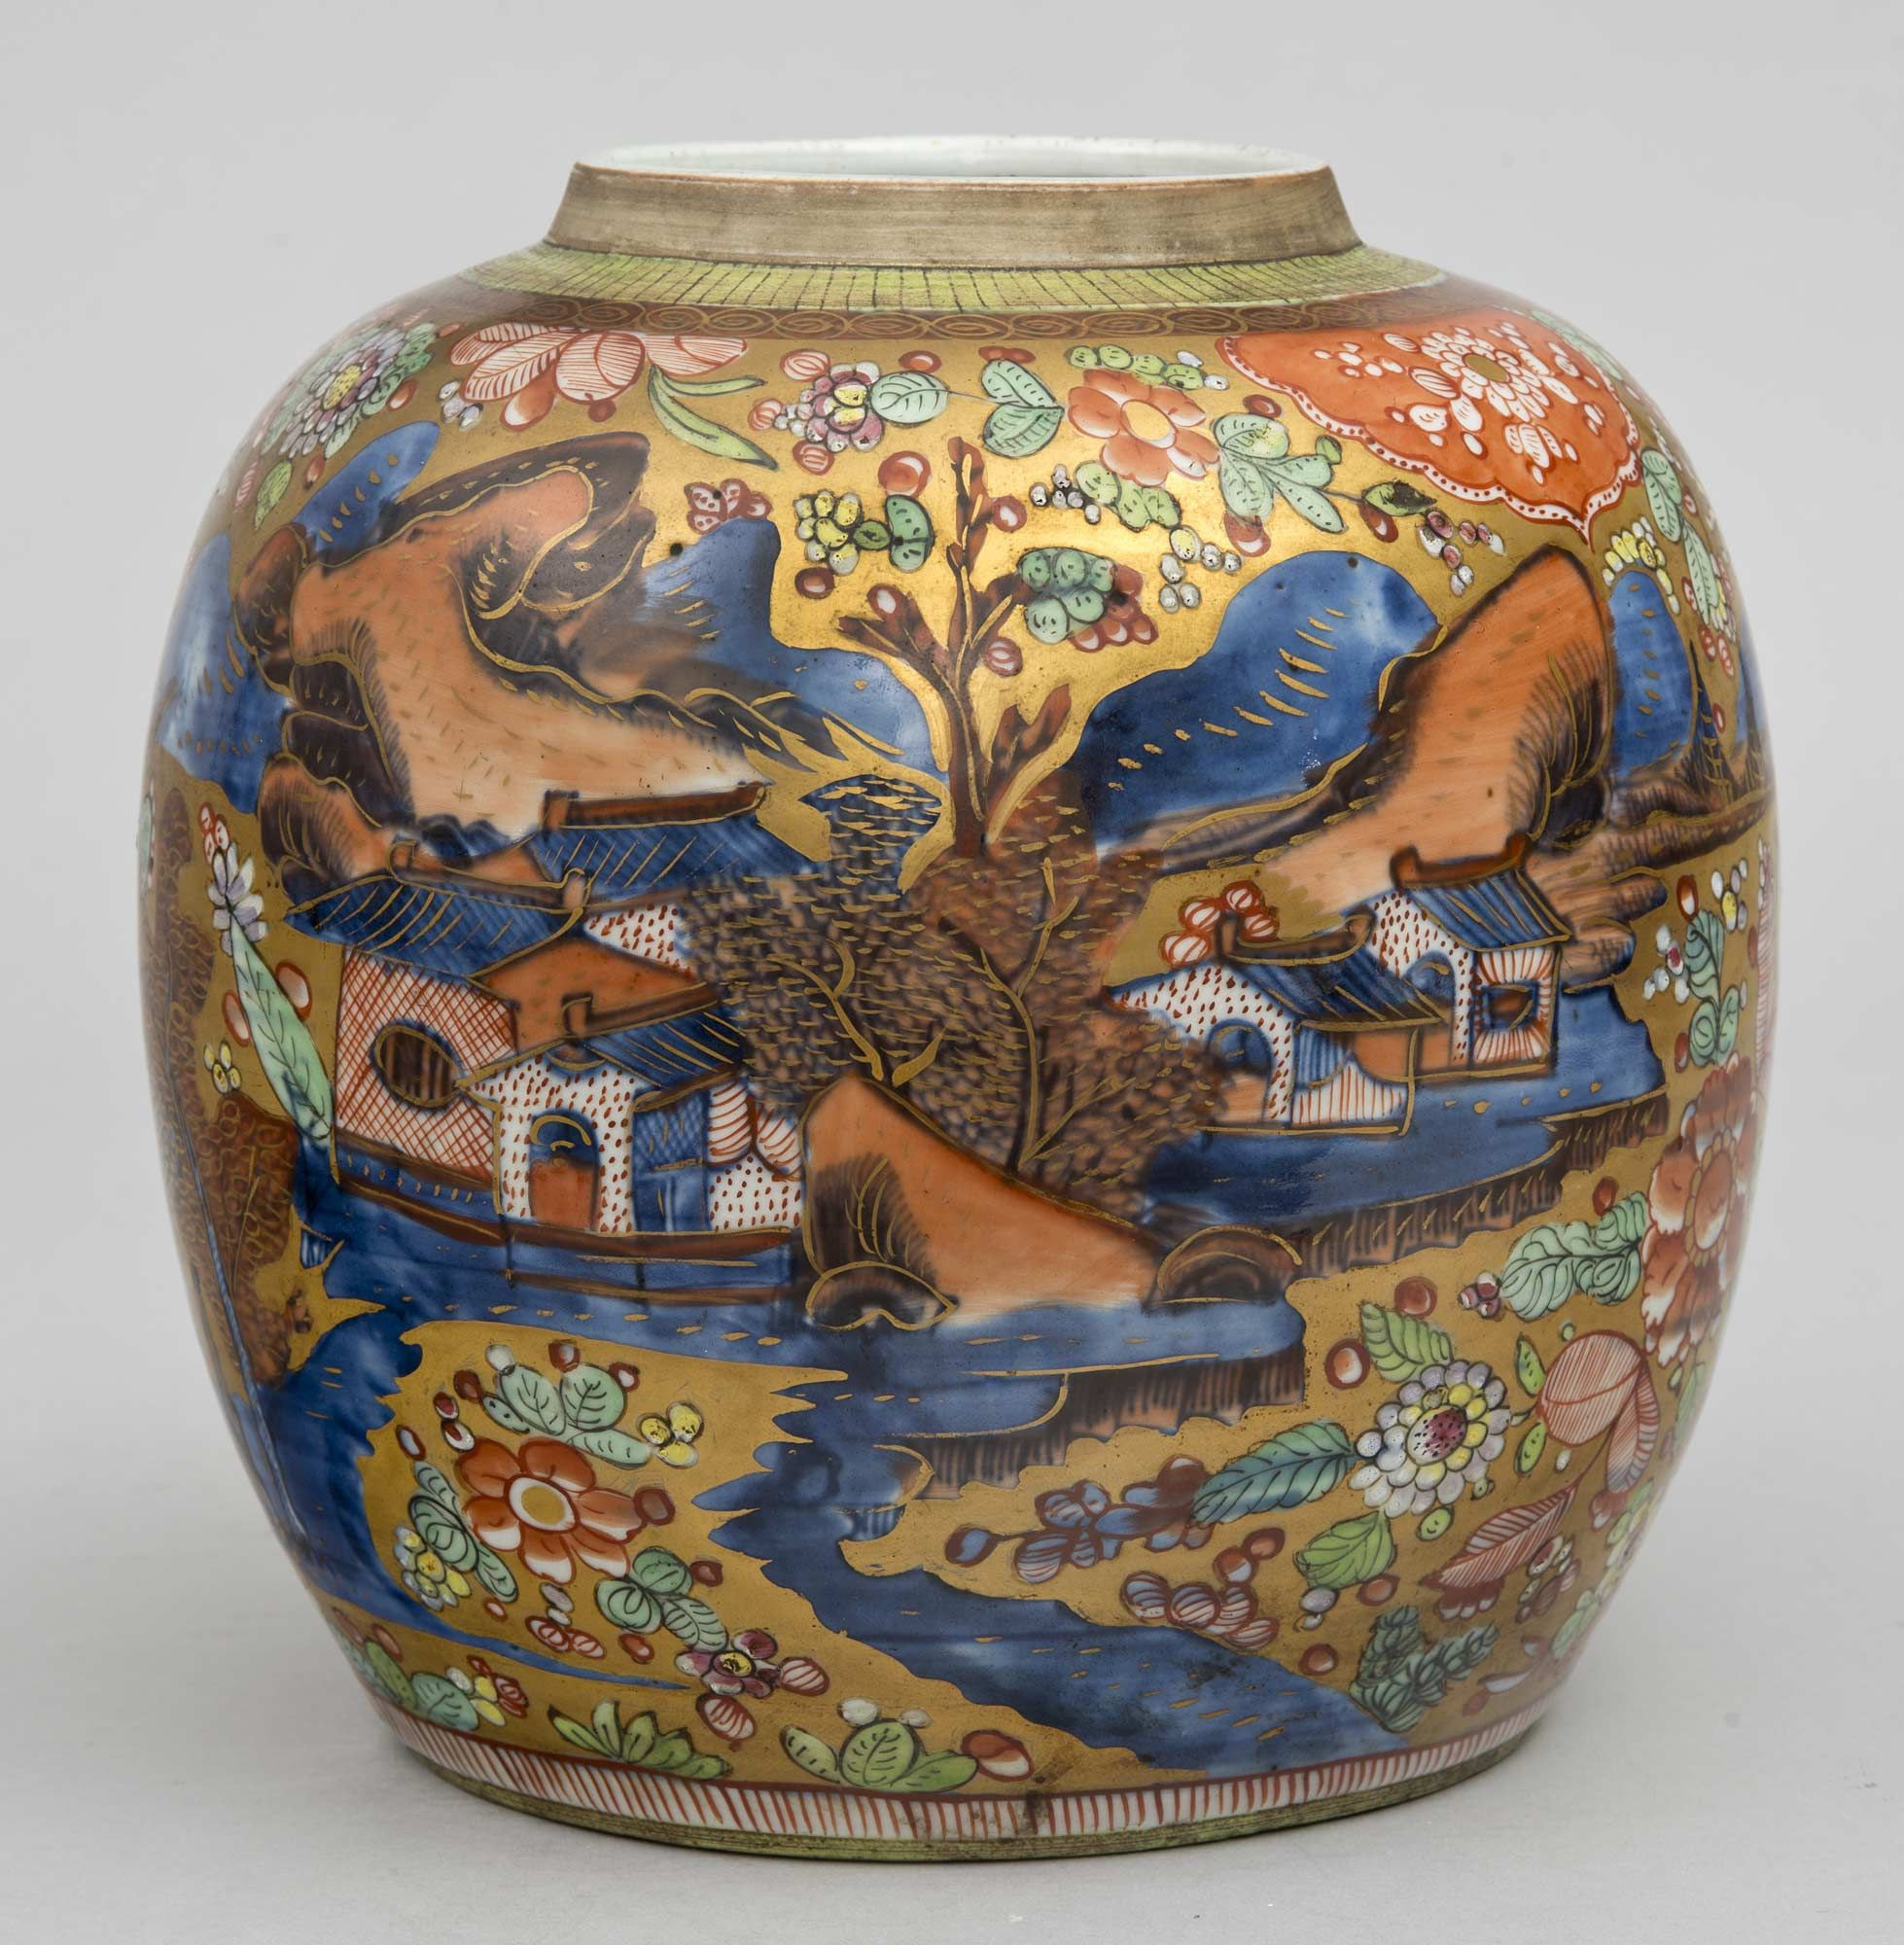 chinese cloisonne vase of chinese vases images stock chinese qianlong period blue and white with chinese vases images stock chinese qianlong period blue and white ginger jar that has been of